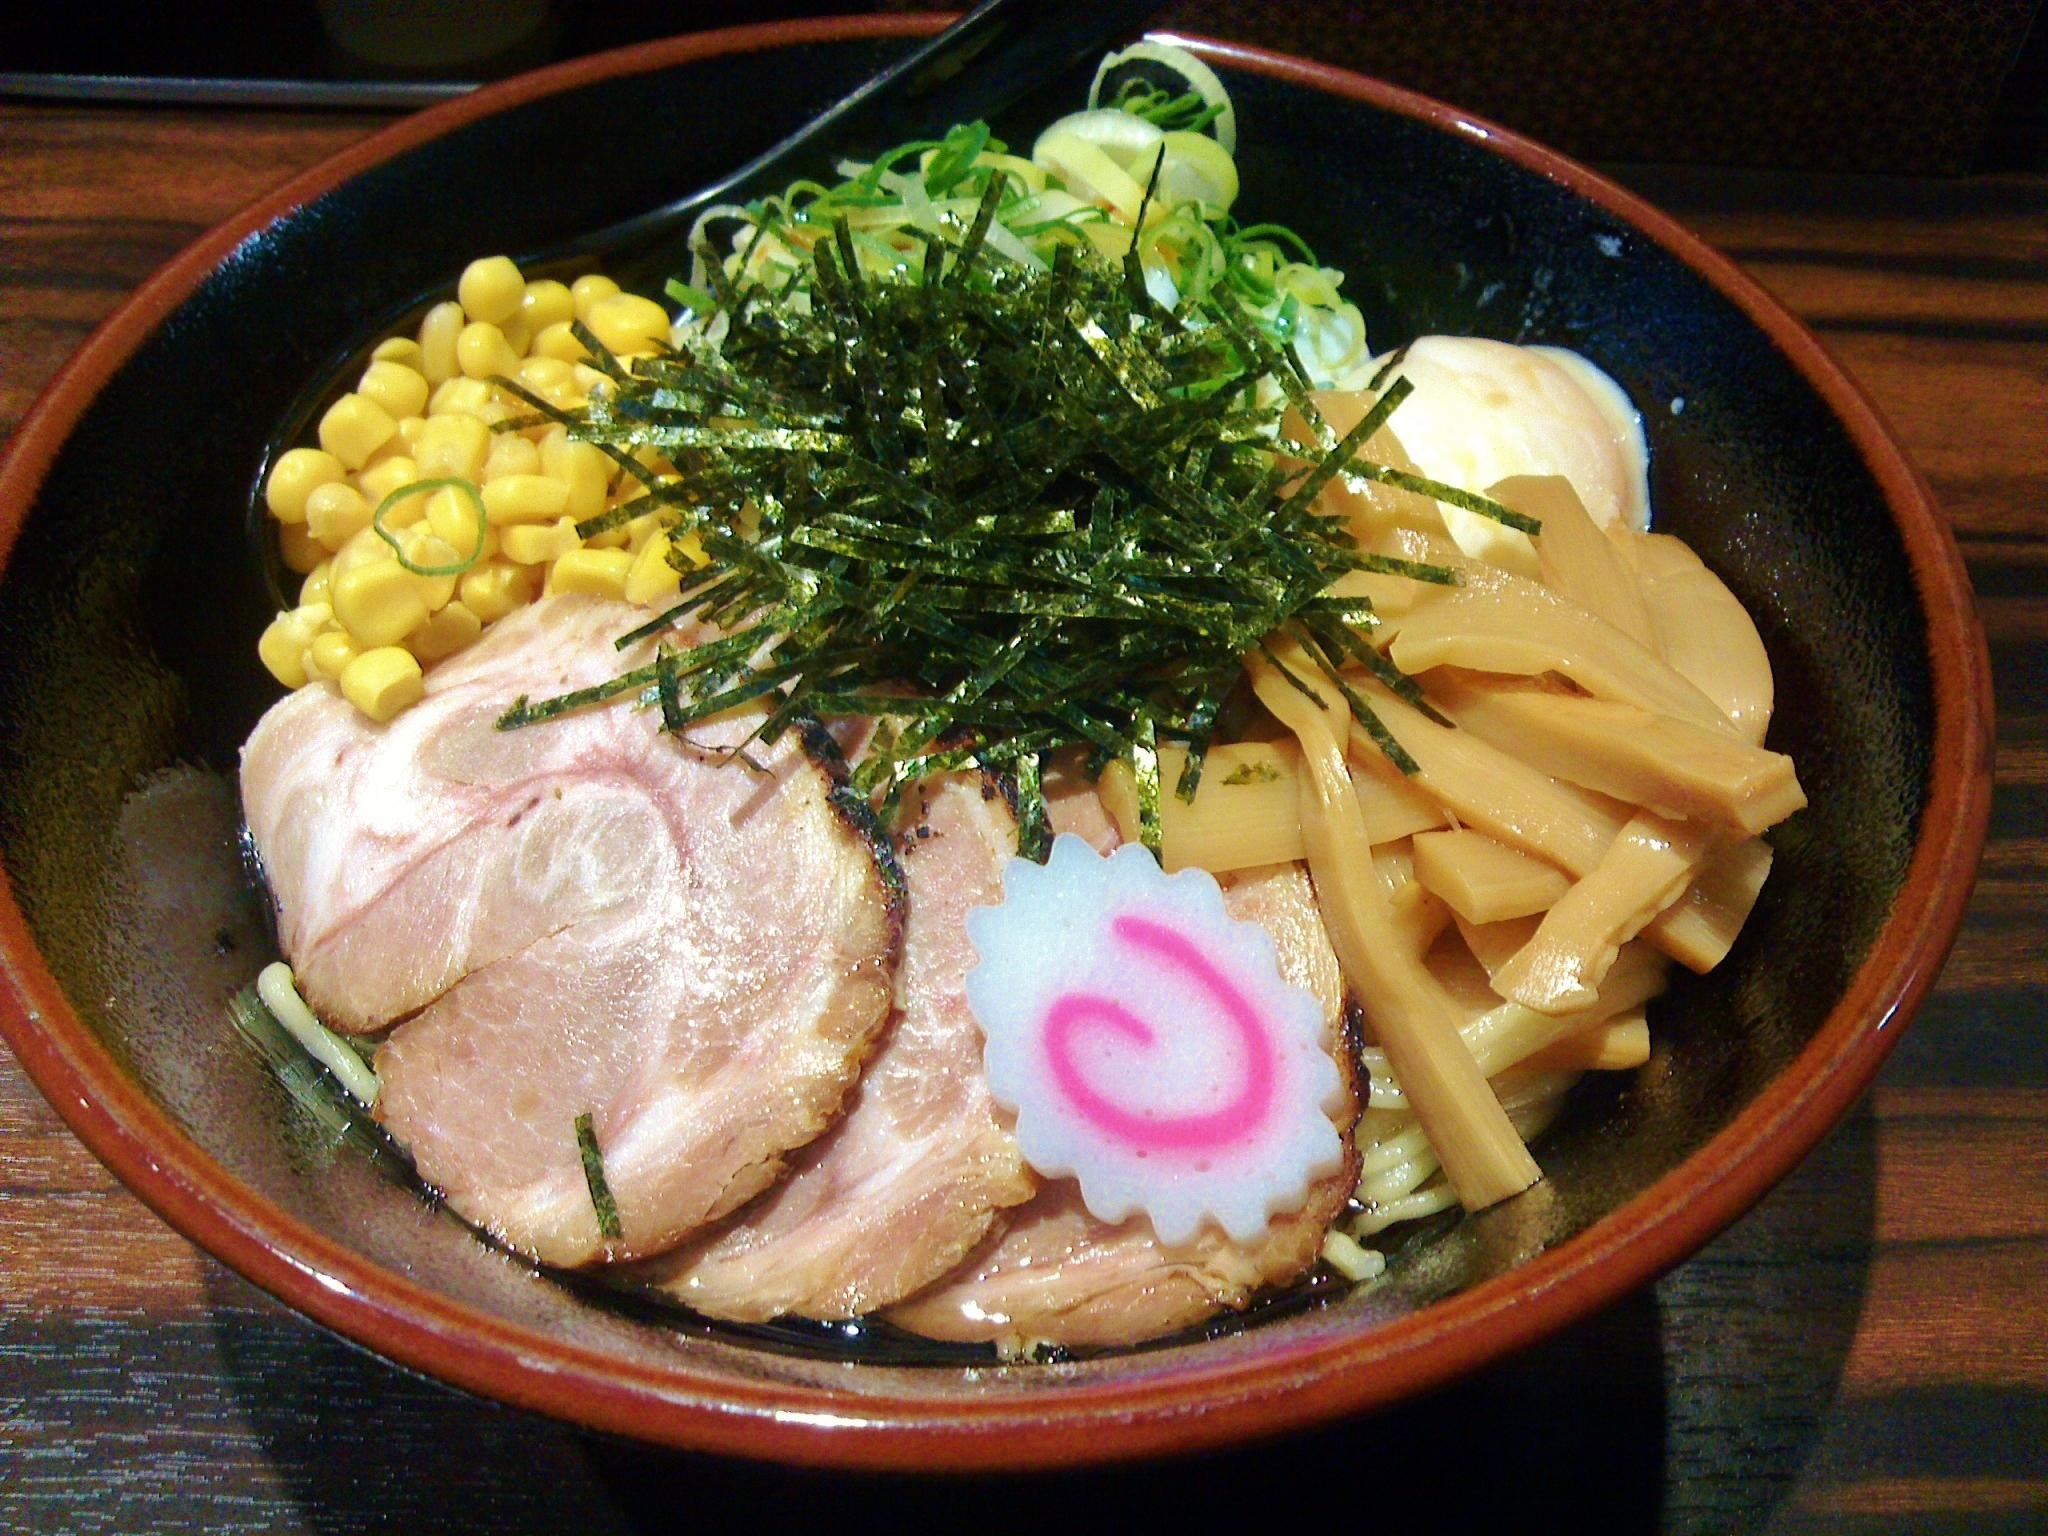 if you eat in tokyo recommend here oil soba store c977 53fc3bc7efe4e - 東京で食べるならココがおすすめ!油そばの店まとめ